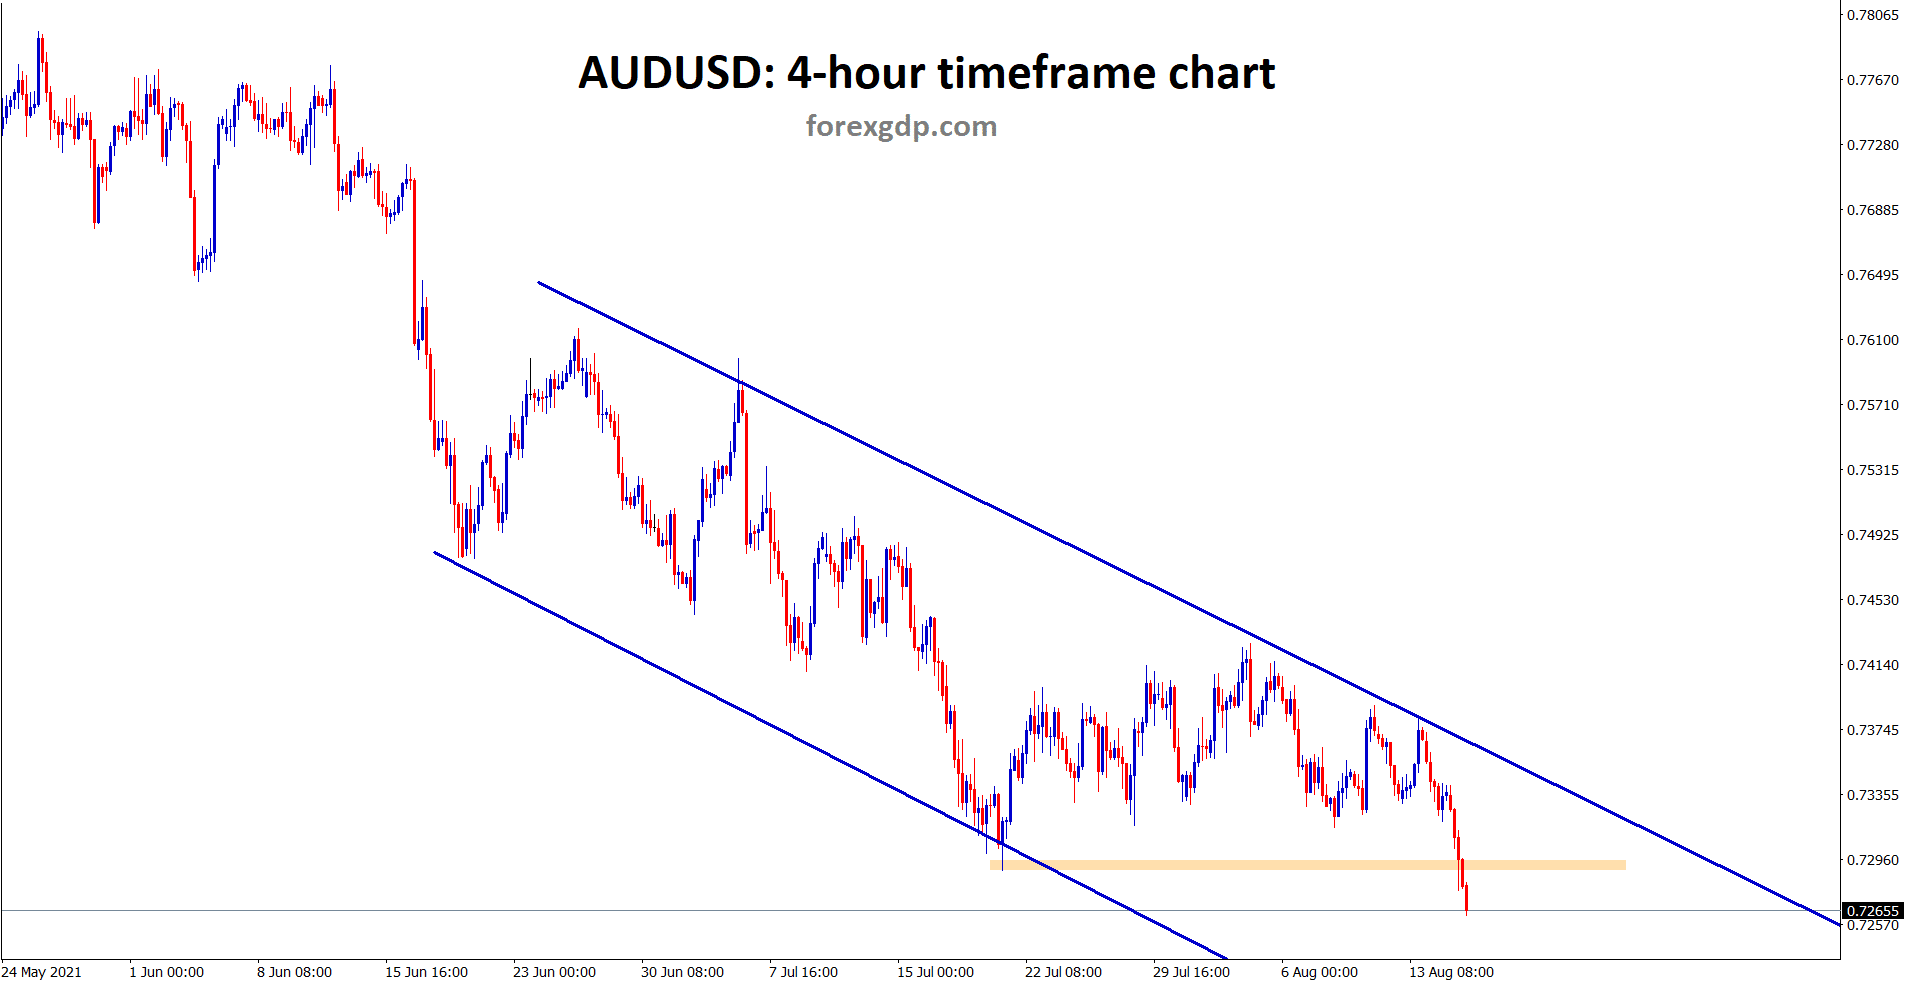 AUDUSD has broken the horizontal support and starts to move in an descending channel